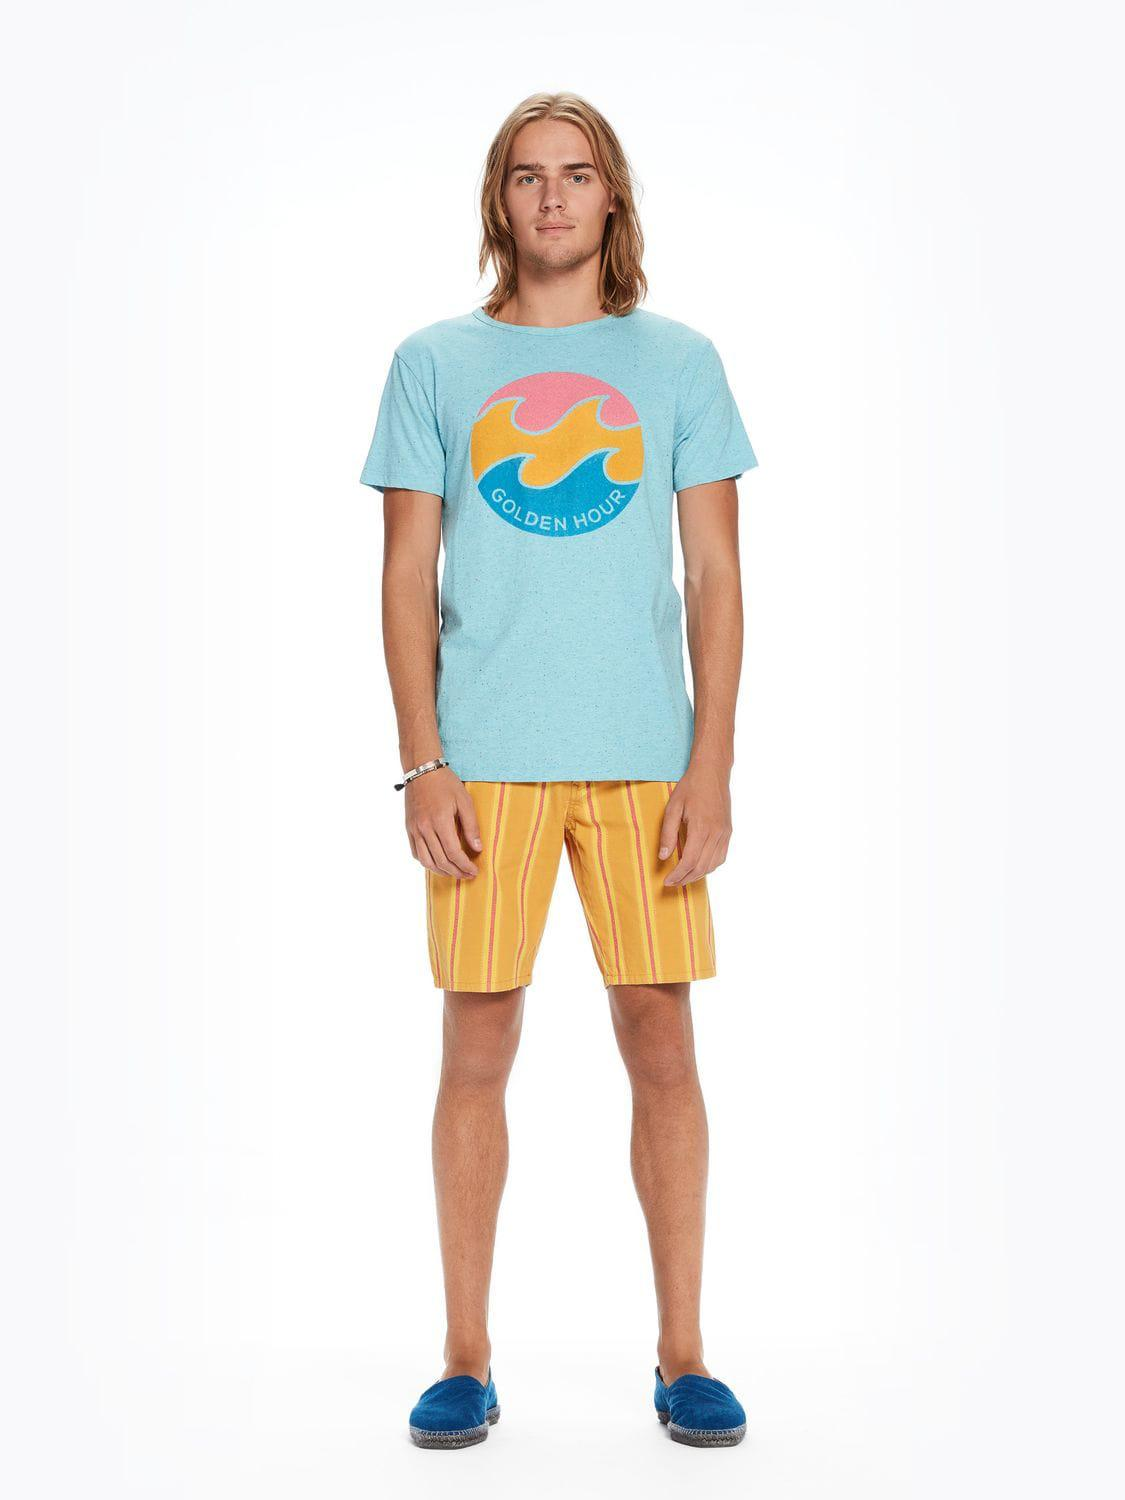 Lyst - Scotch   Soda Flock Printed T-shirt in Blue for Men 752a4387aad